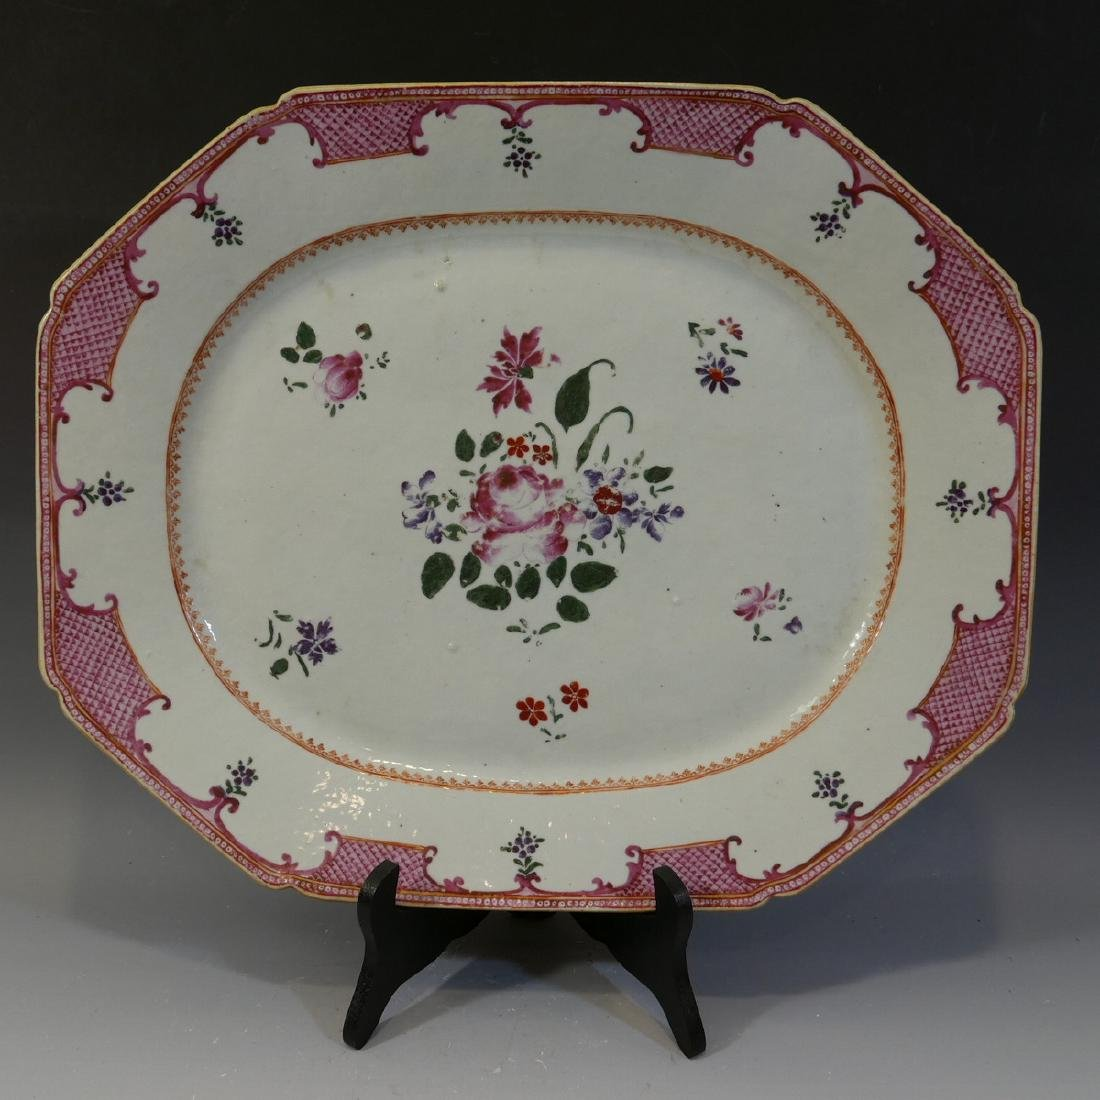 LARGE ANTIQUE CHINESE FAMILLE ROSE PORCELAIN PLATTER -